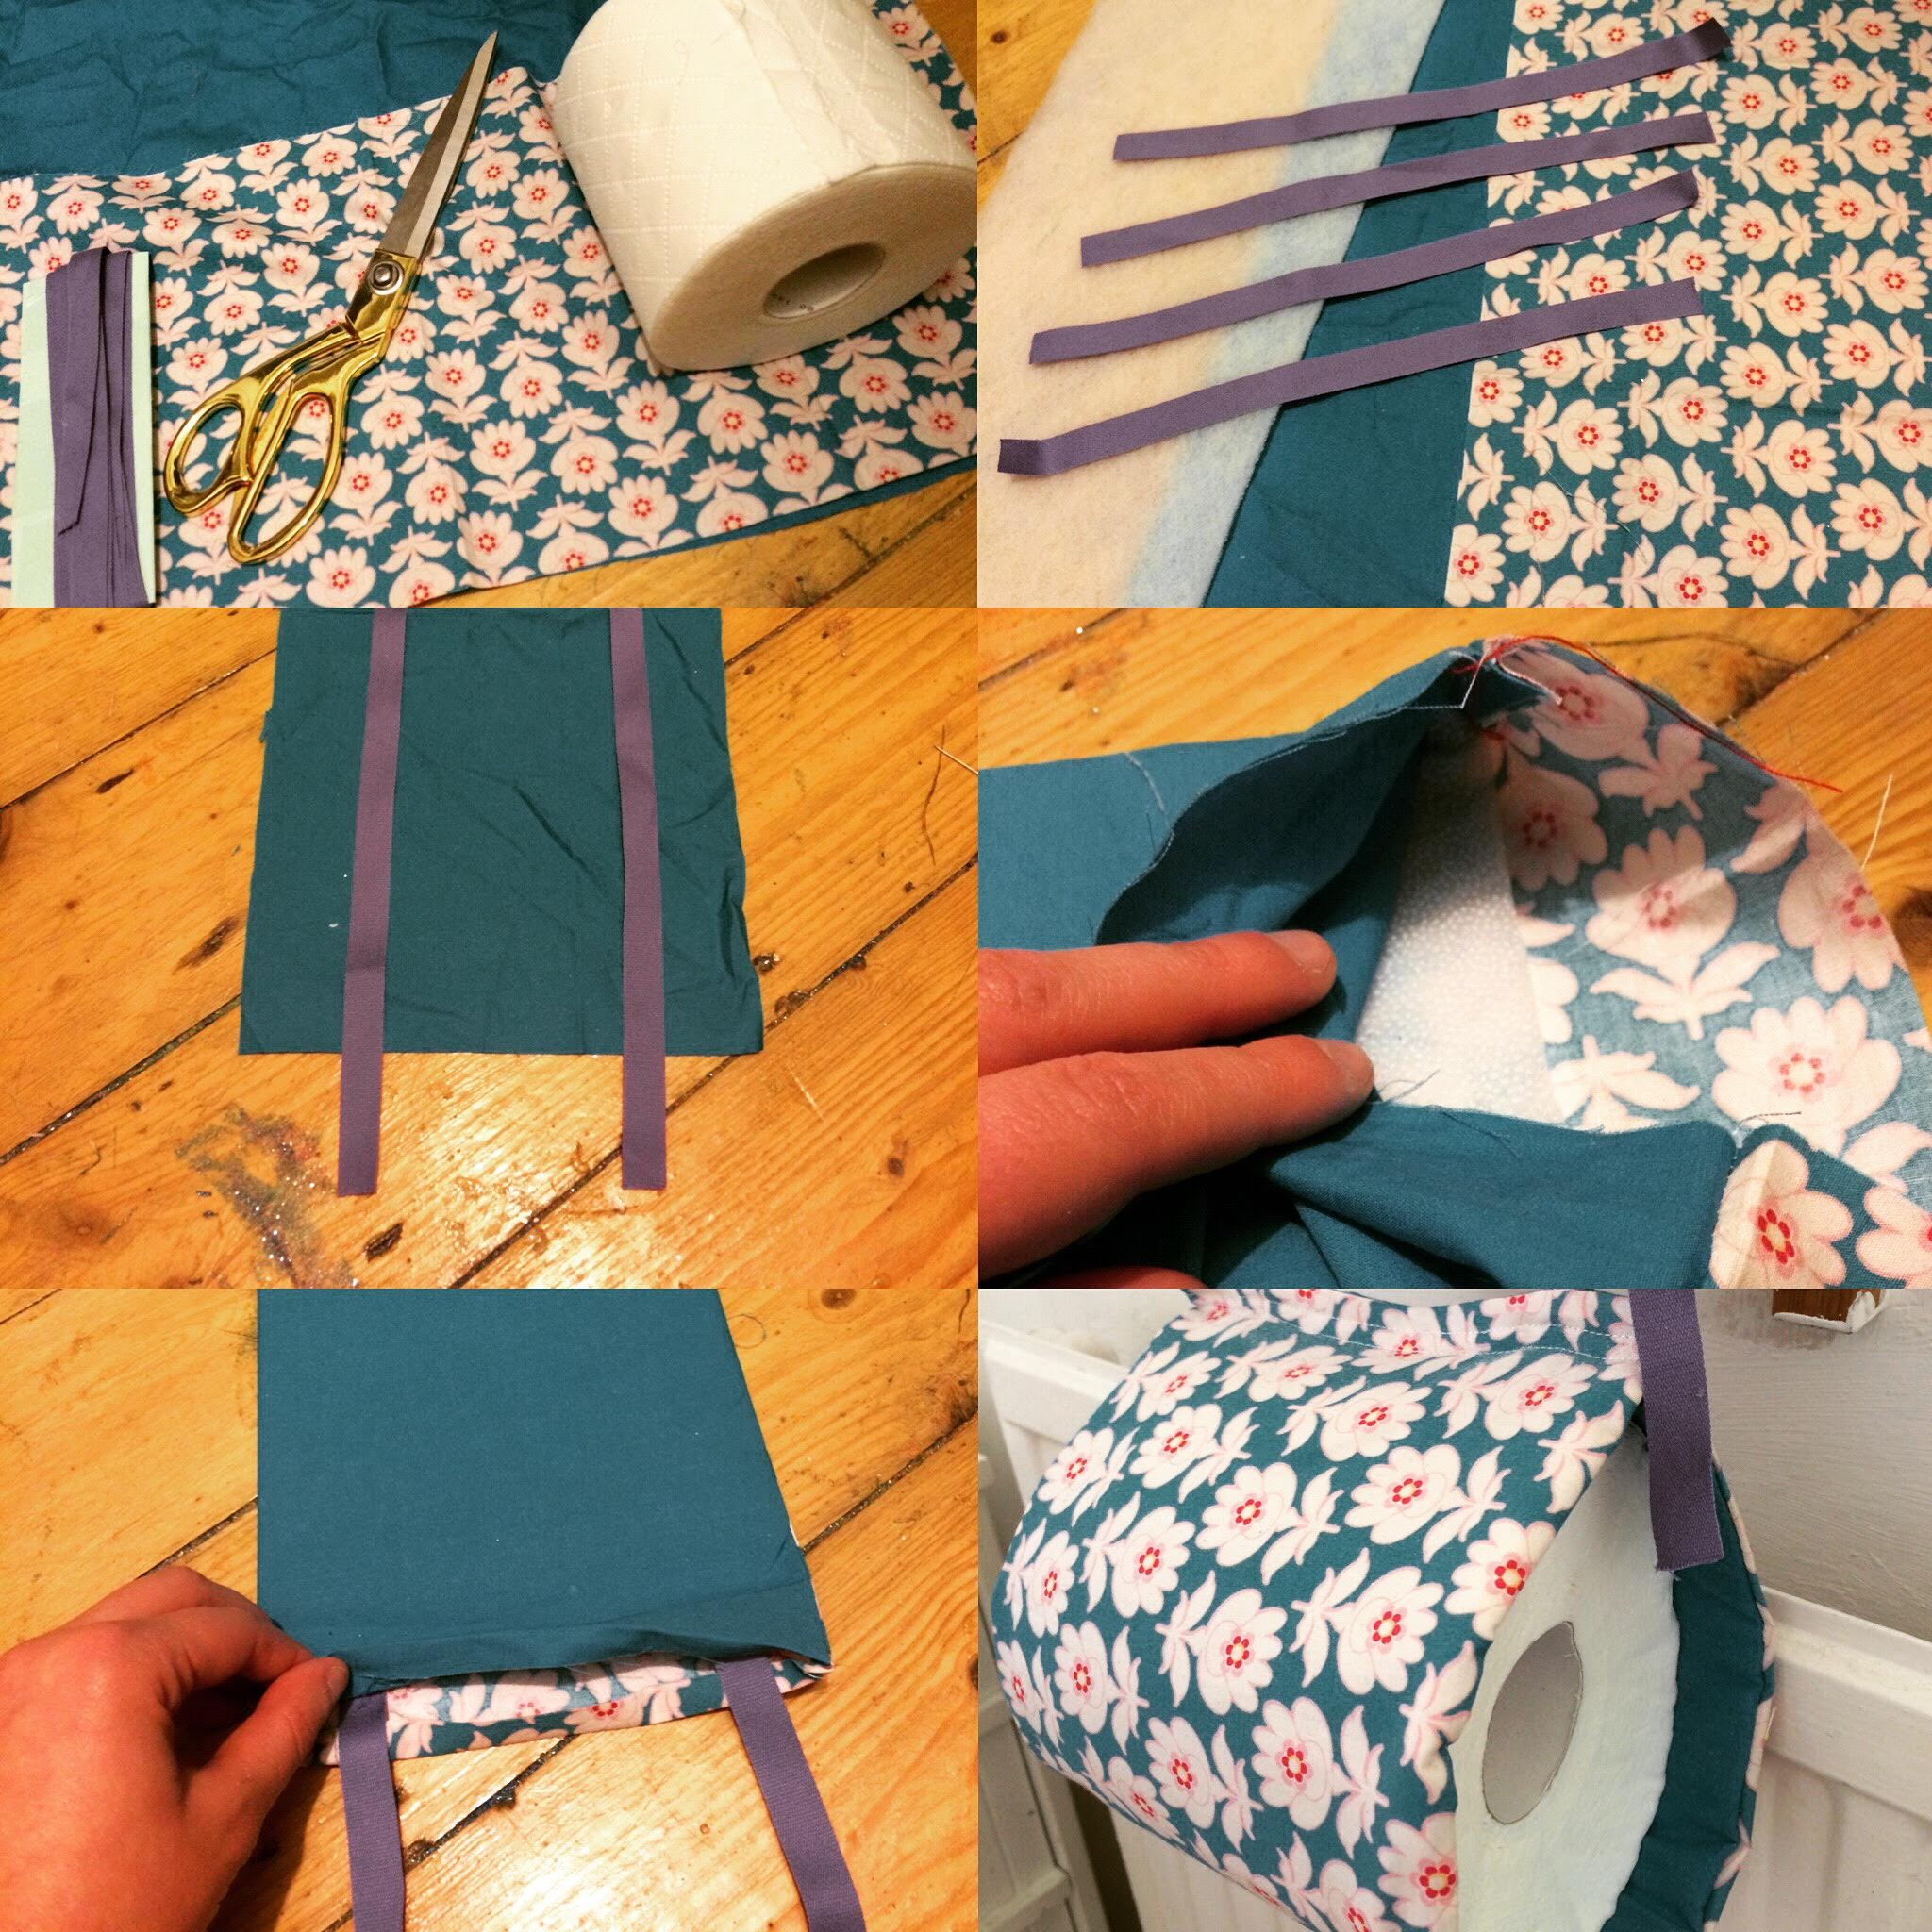 Sewing a toilet roll holder